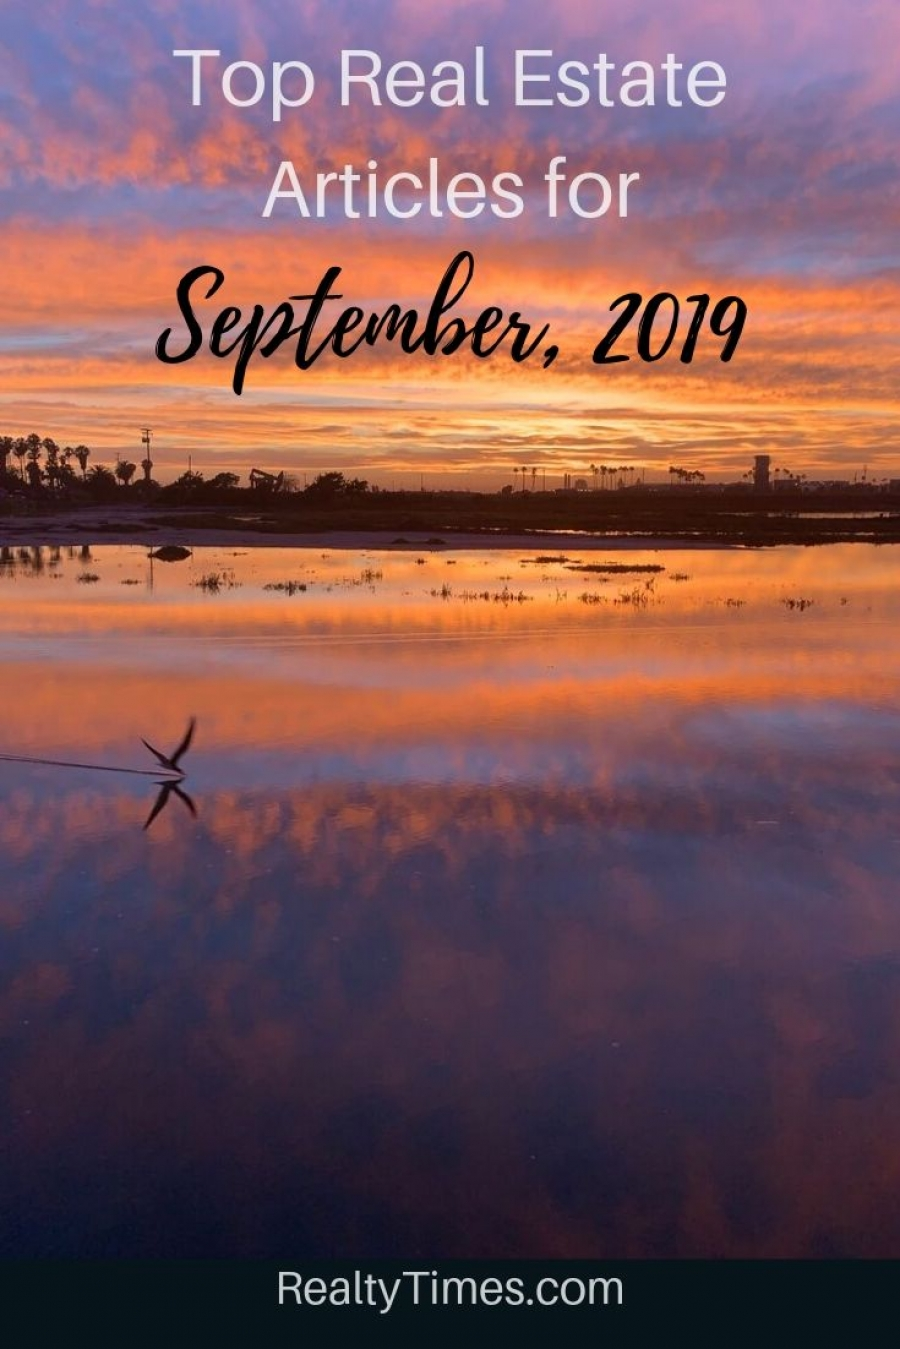 Top Real Estate Articles for September 2019